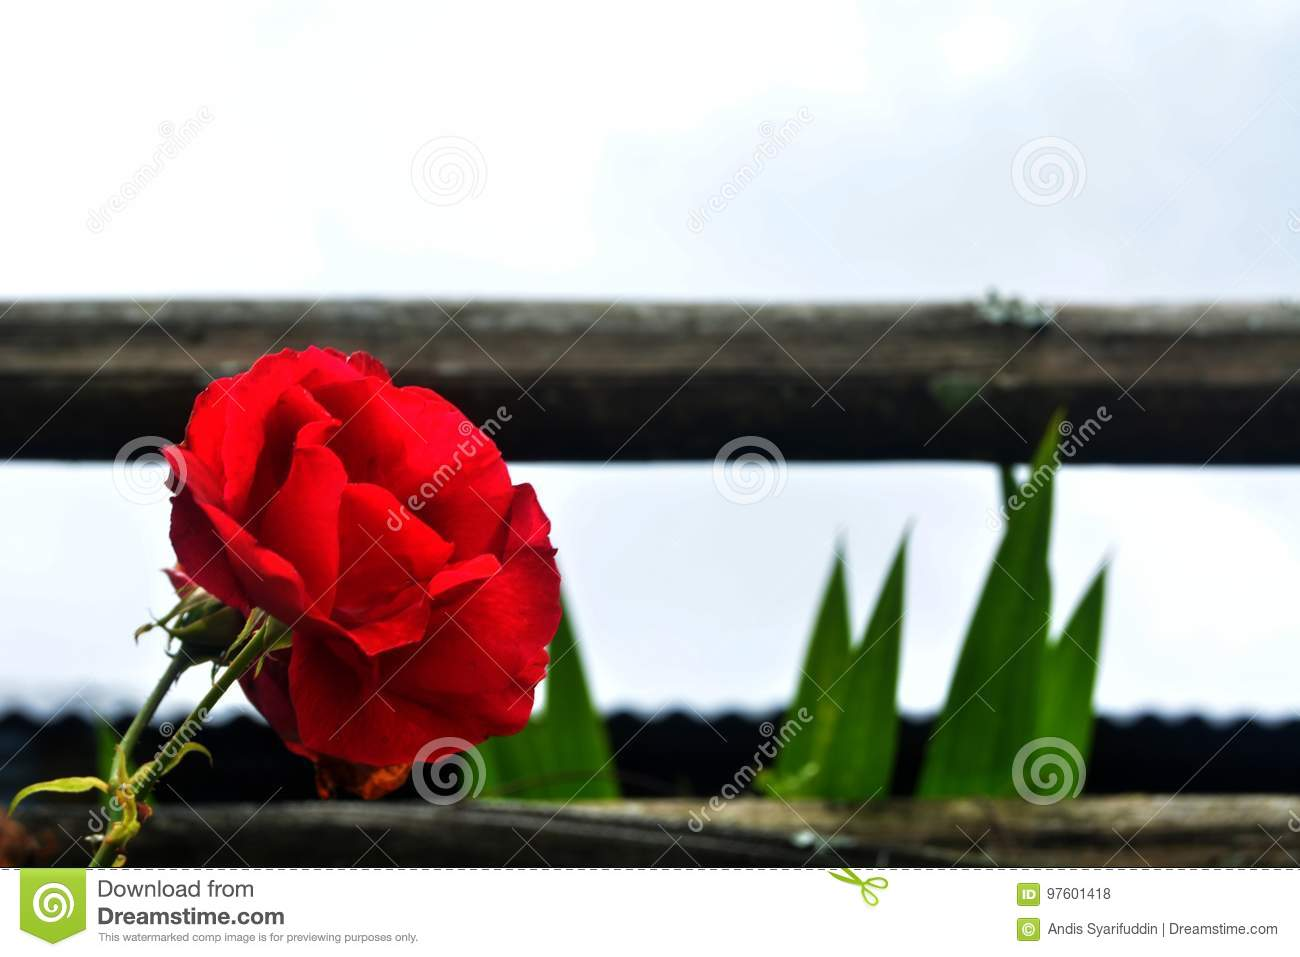 Flowers and fences stock photo image of sharp asia 97601418 flowers and fences izmirmasajfo